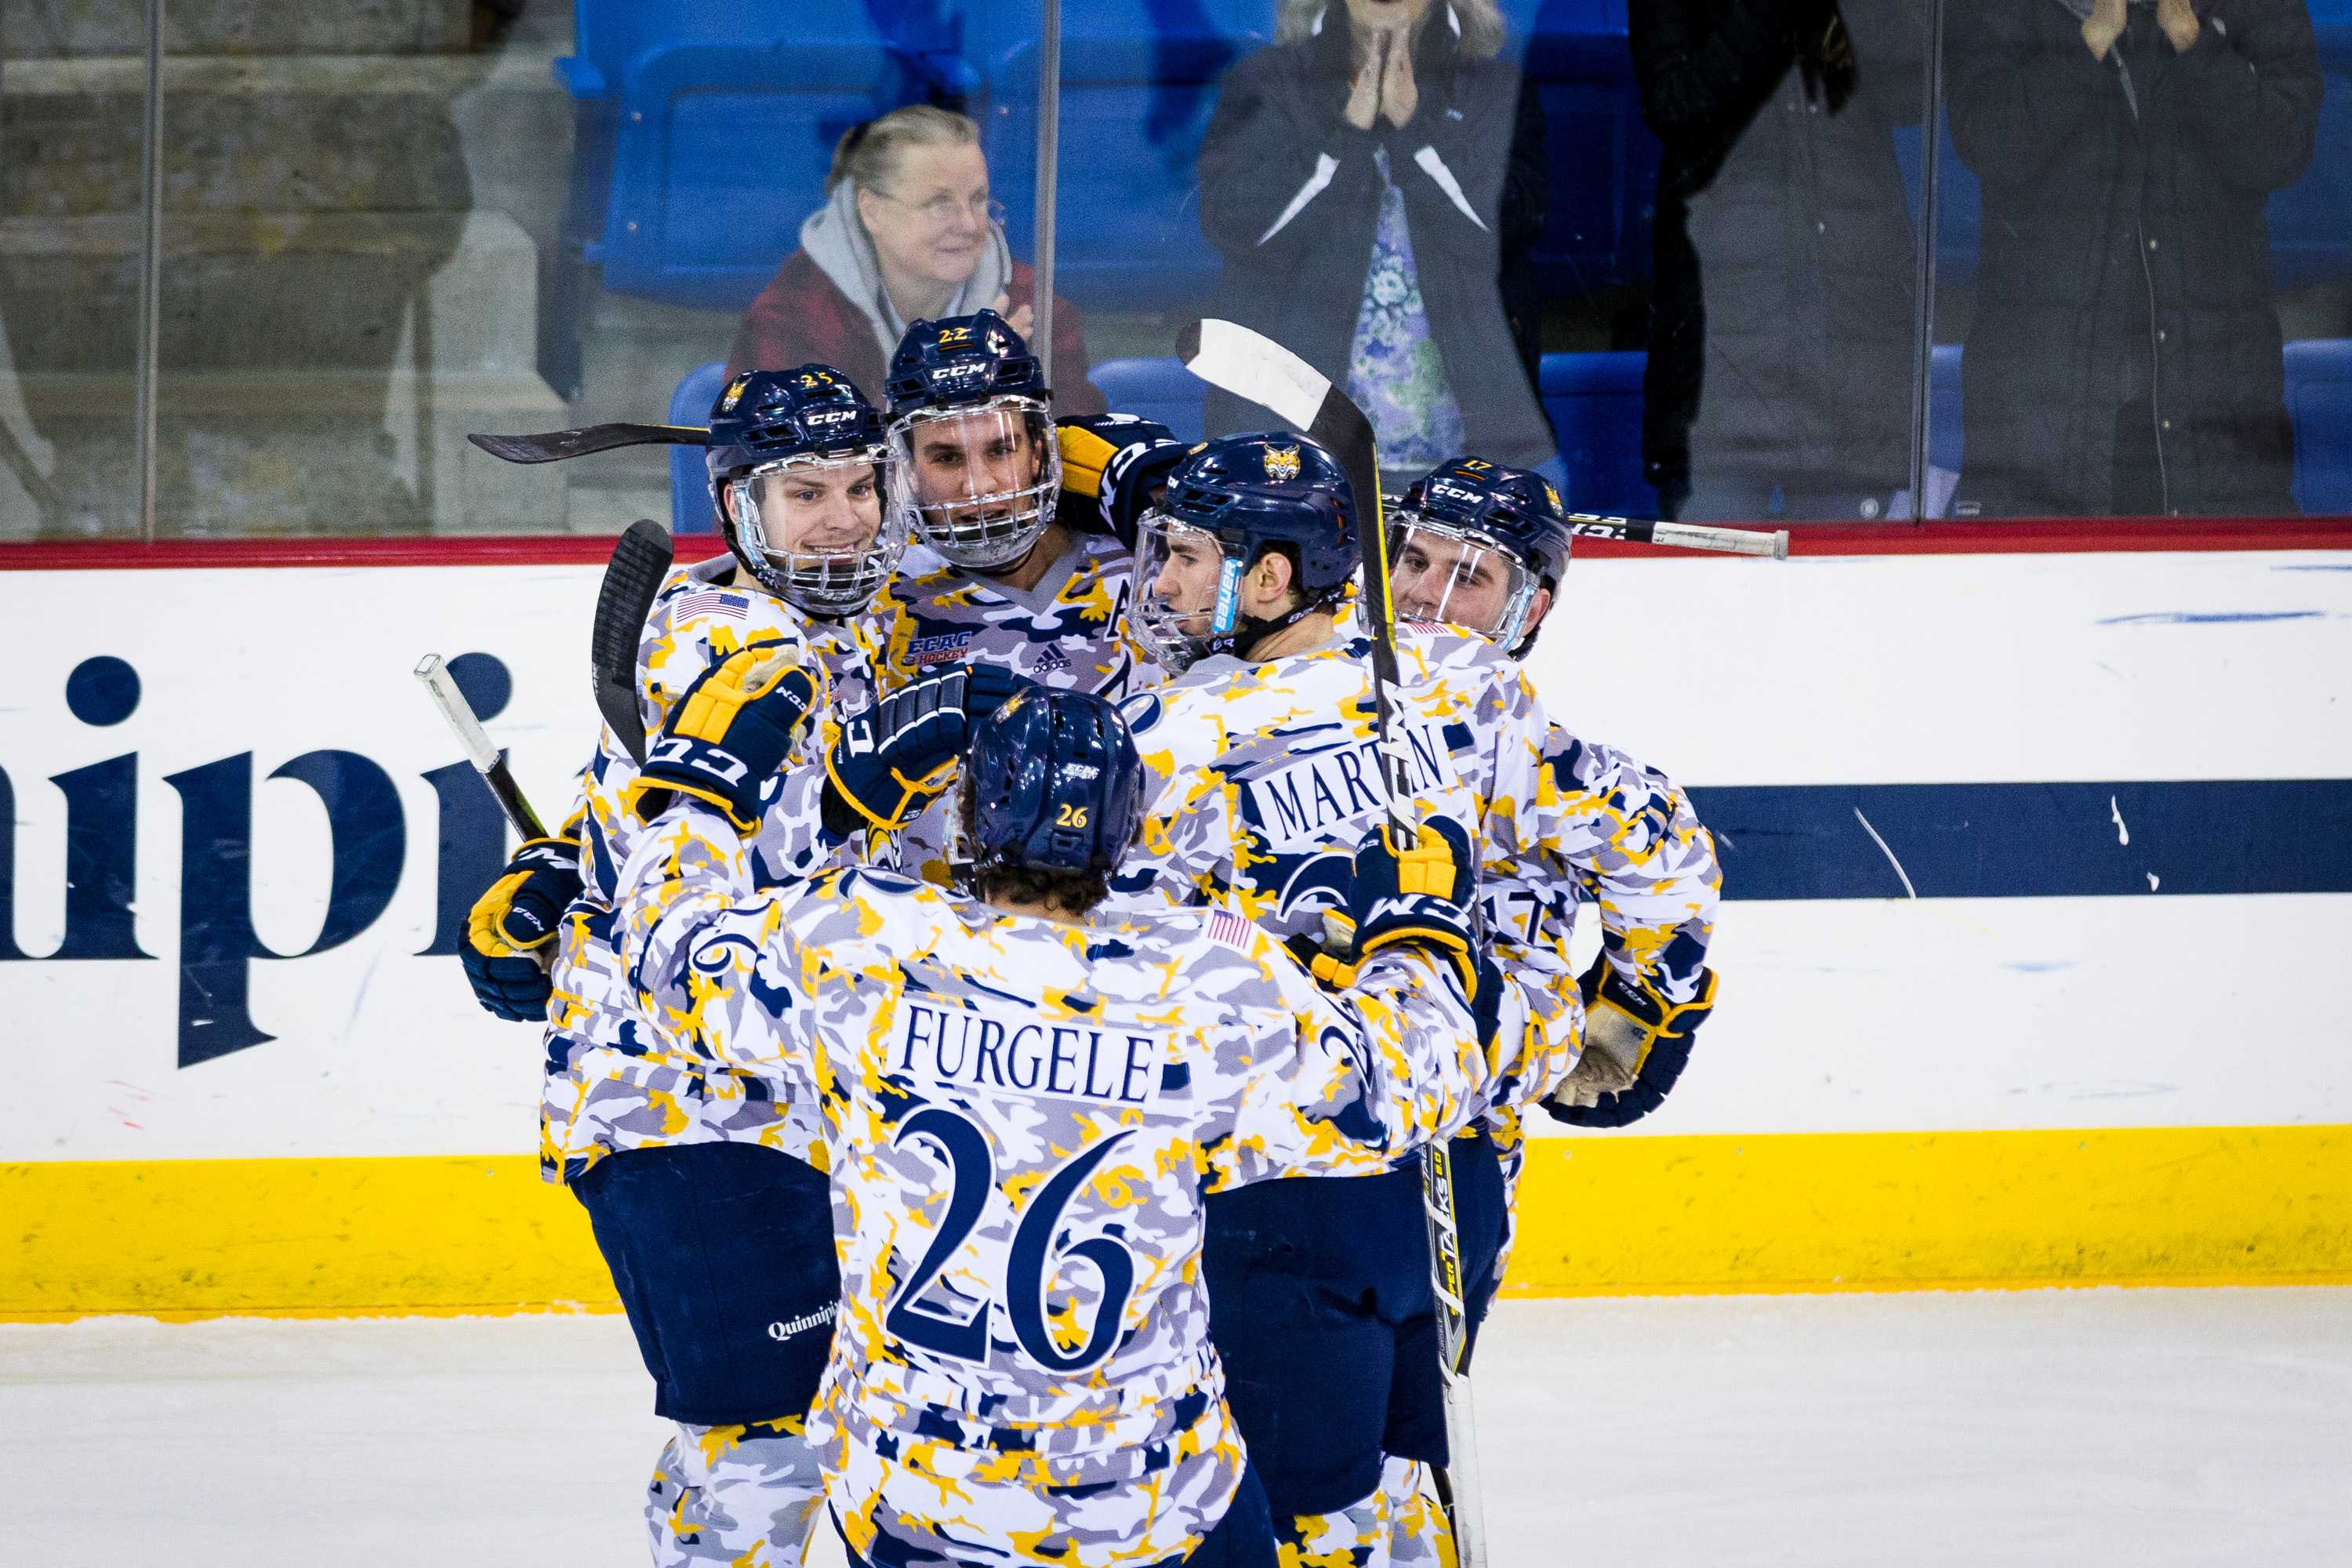 Cait's Column: With Quinnipiac's weekend sweep came an attitude shift